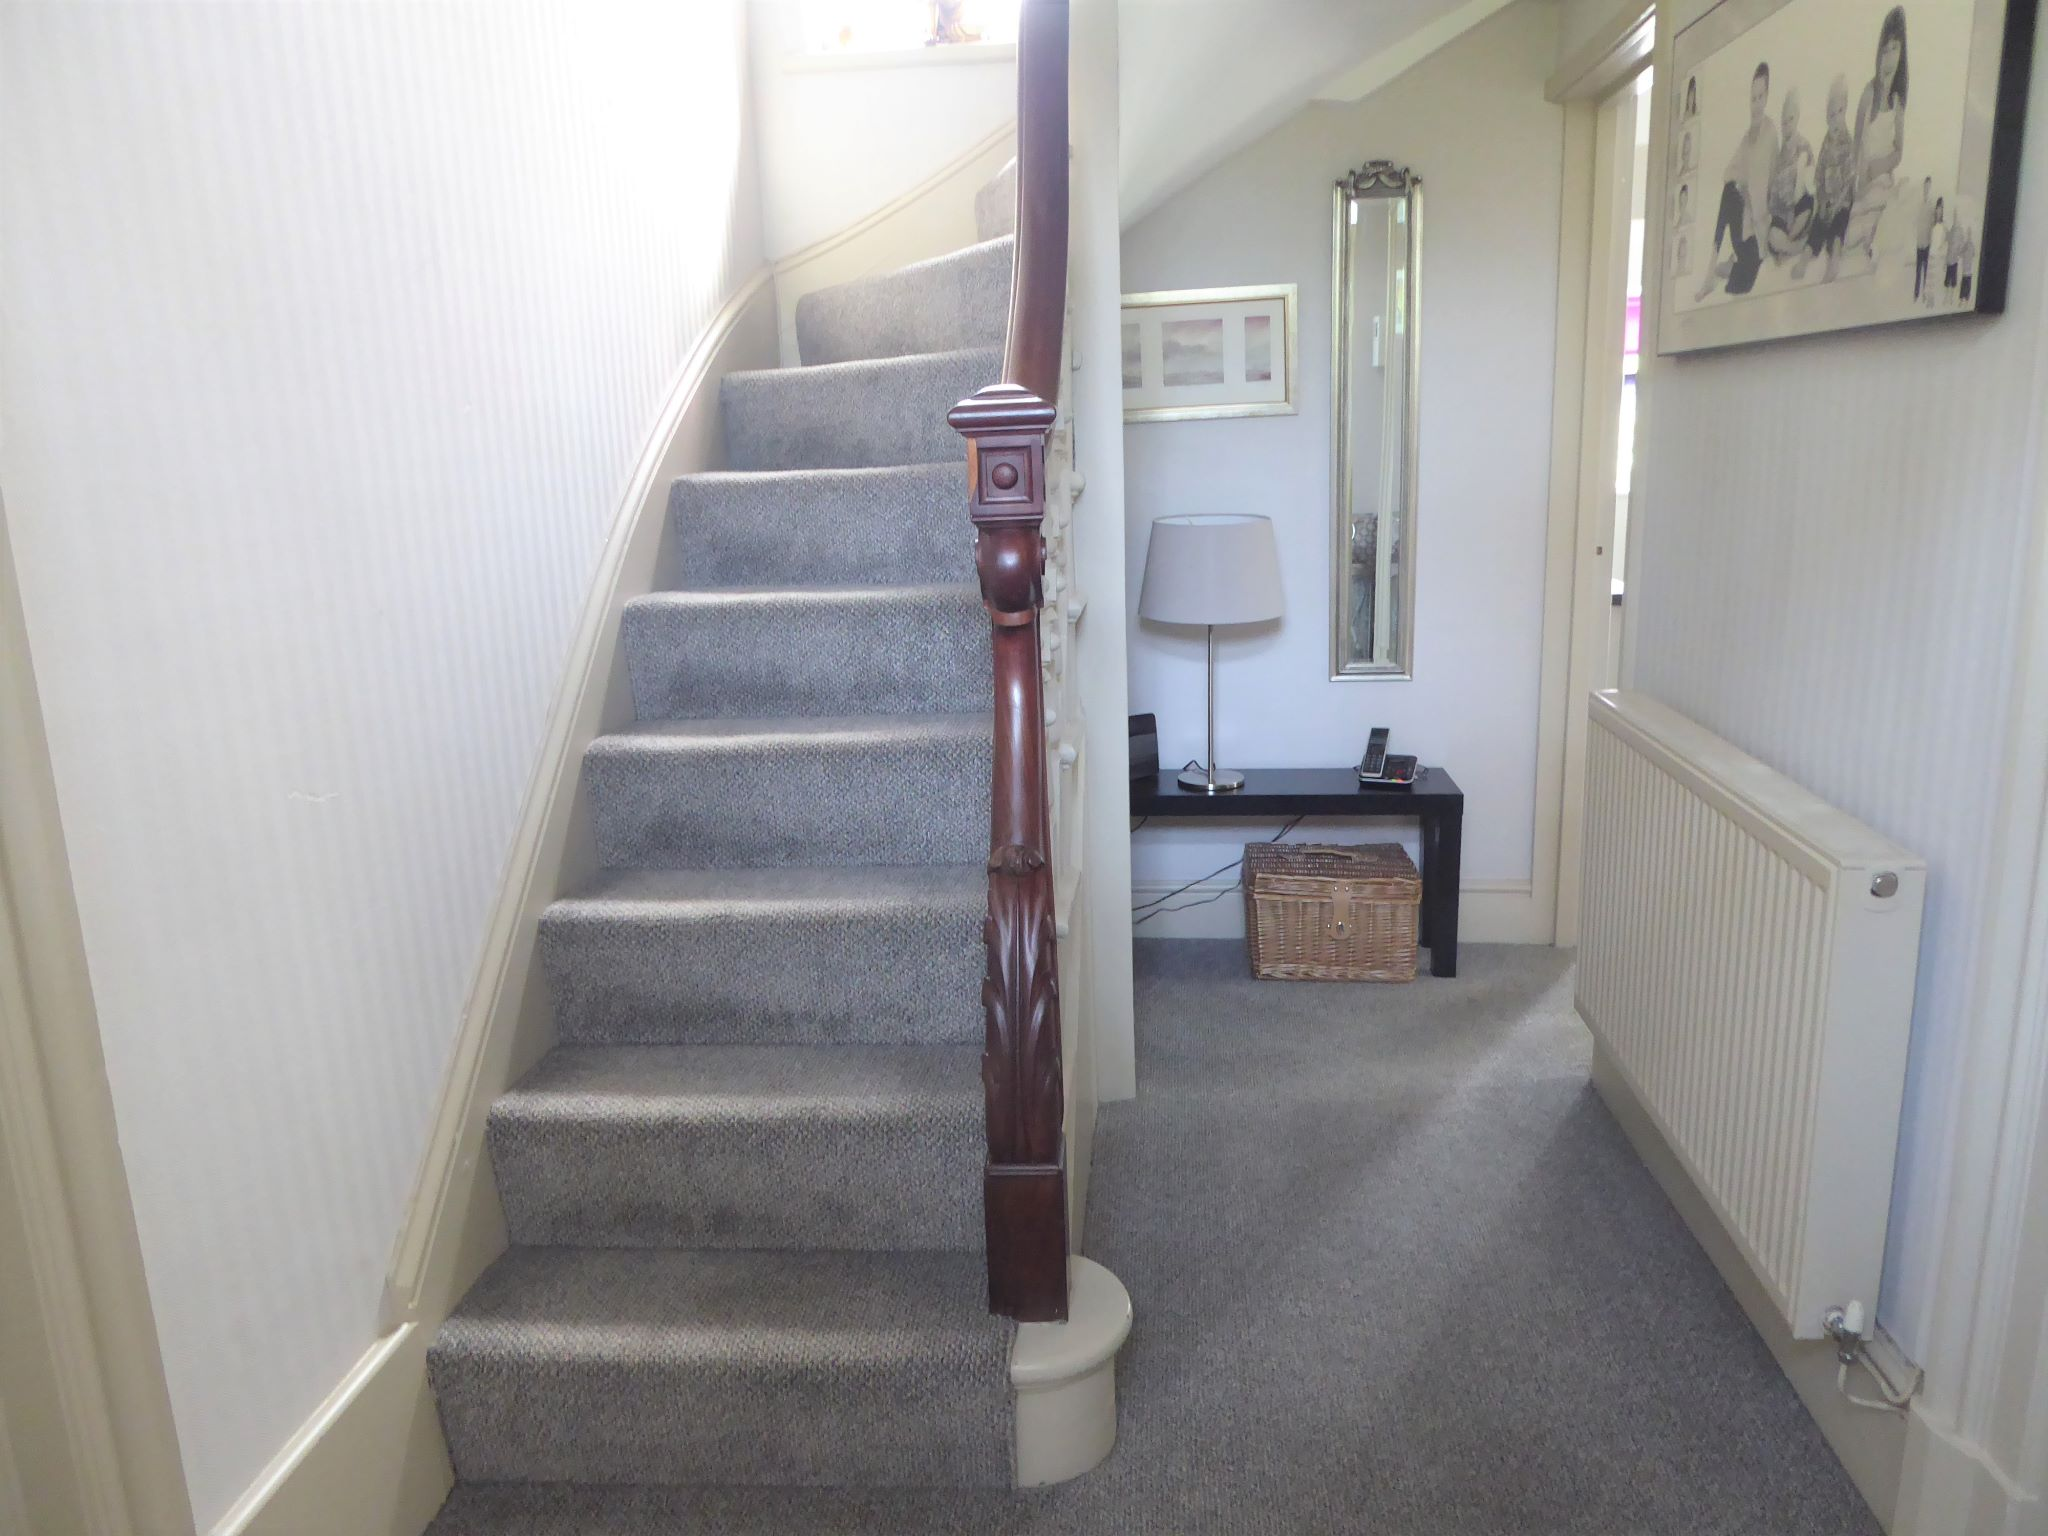 2 bedroom cottage house SSTC in Abergele - Photograph 2